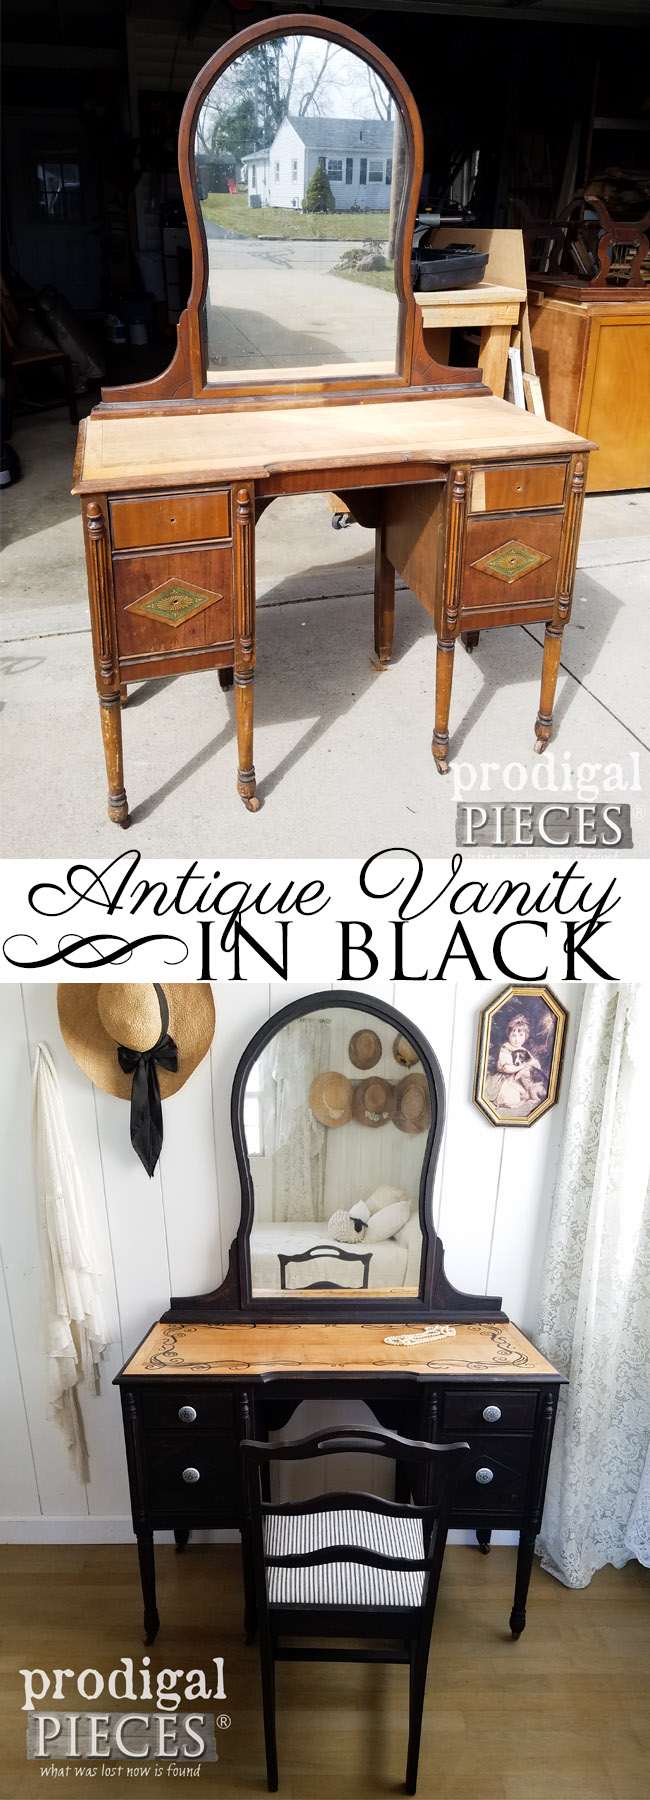 This worn and raw vanity needed a new lease on life. Larissa of Prodigal Pieces ran with the feel of it and turned it into a gorgeous black antique vanity. See the details at prodigalpieces.com